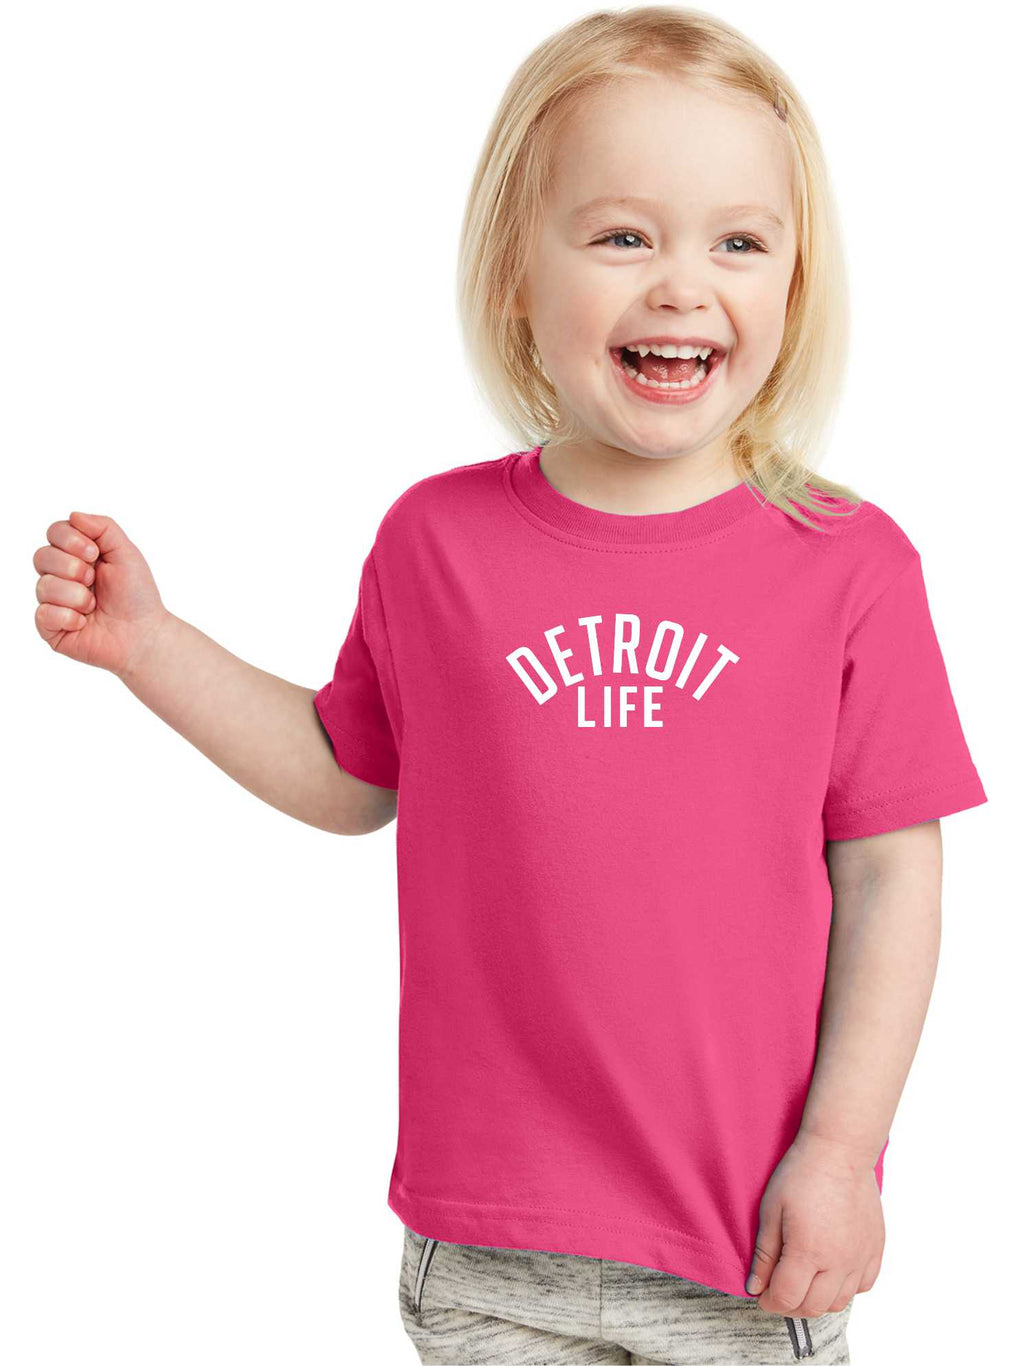 DETROIT LIFE TODDLER T SHIRT